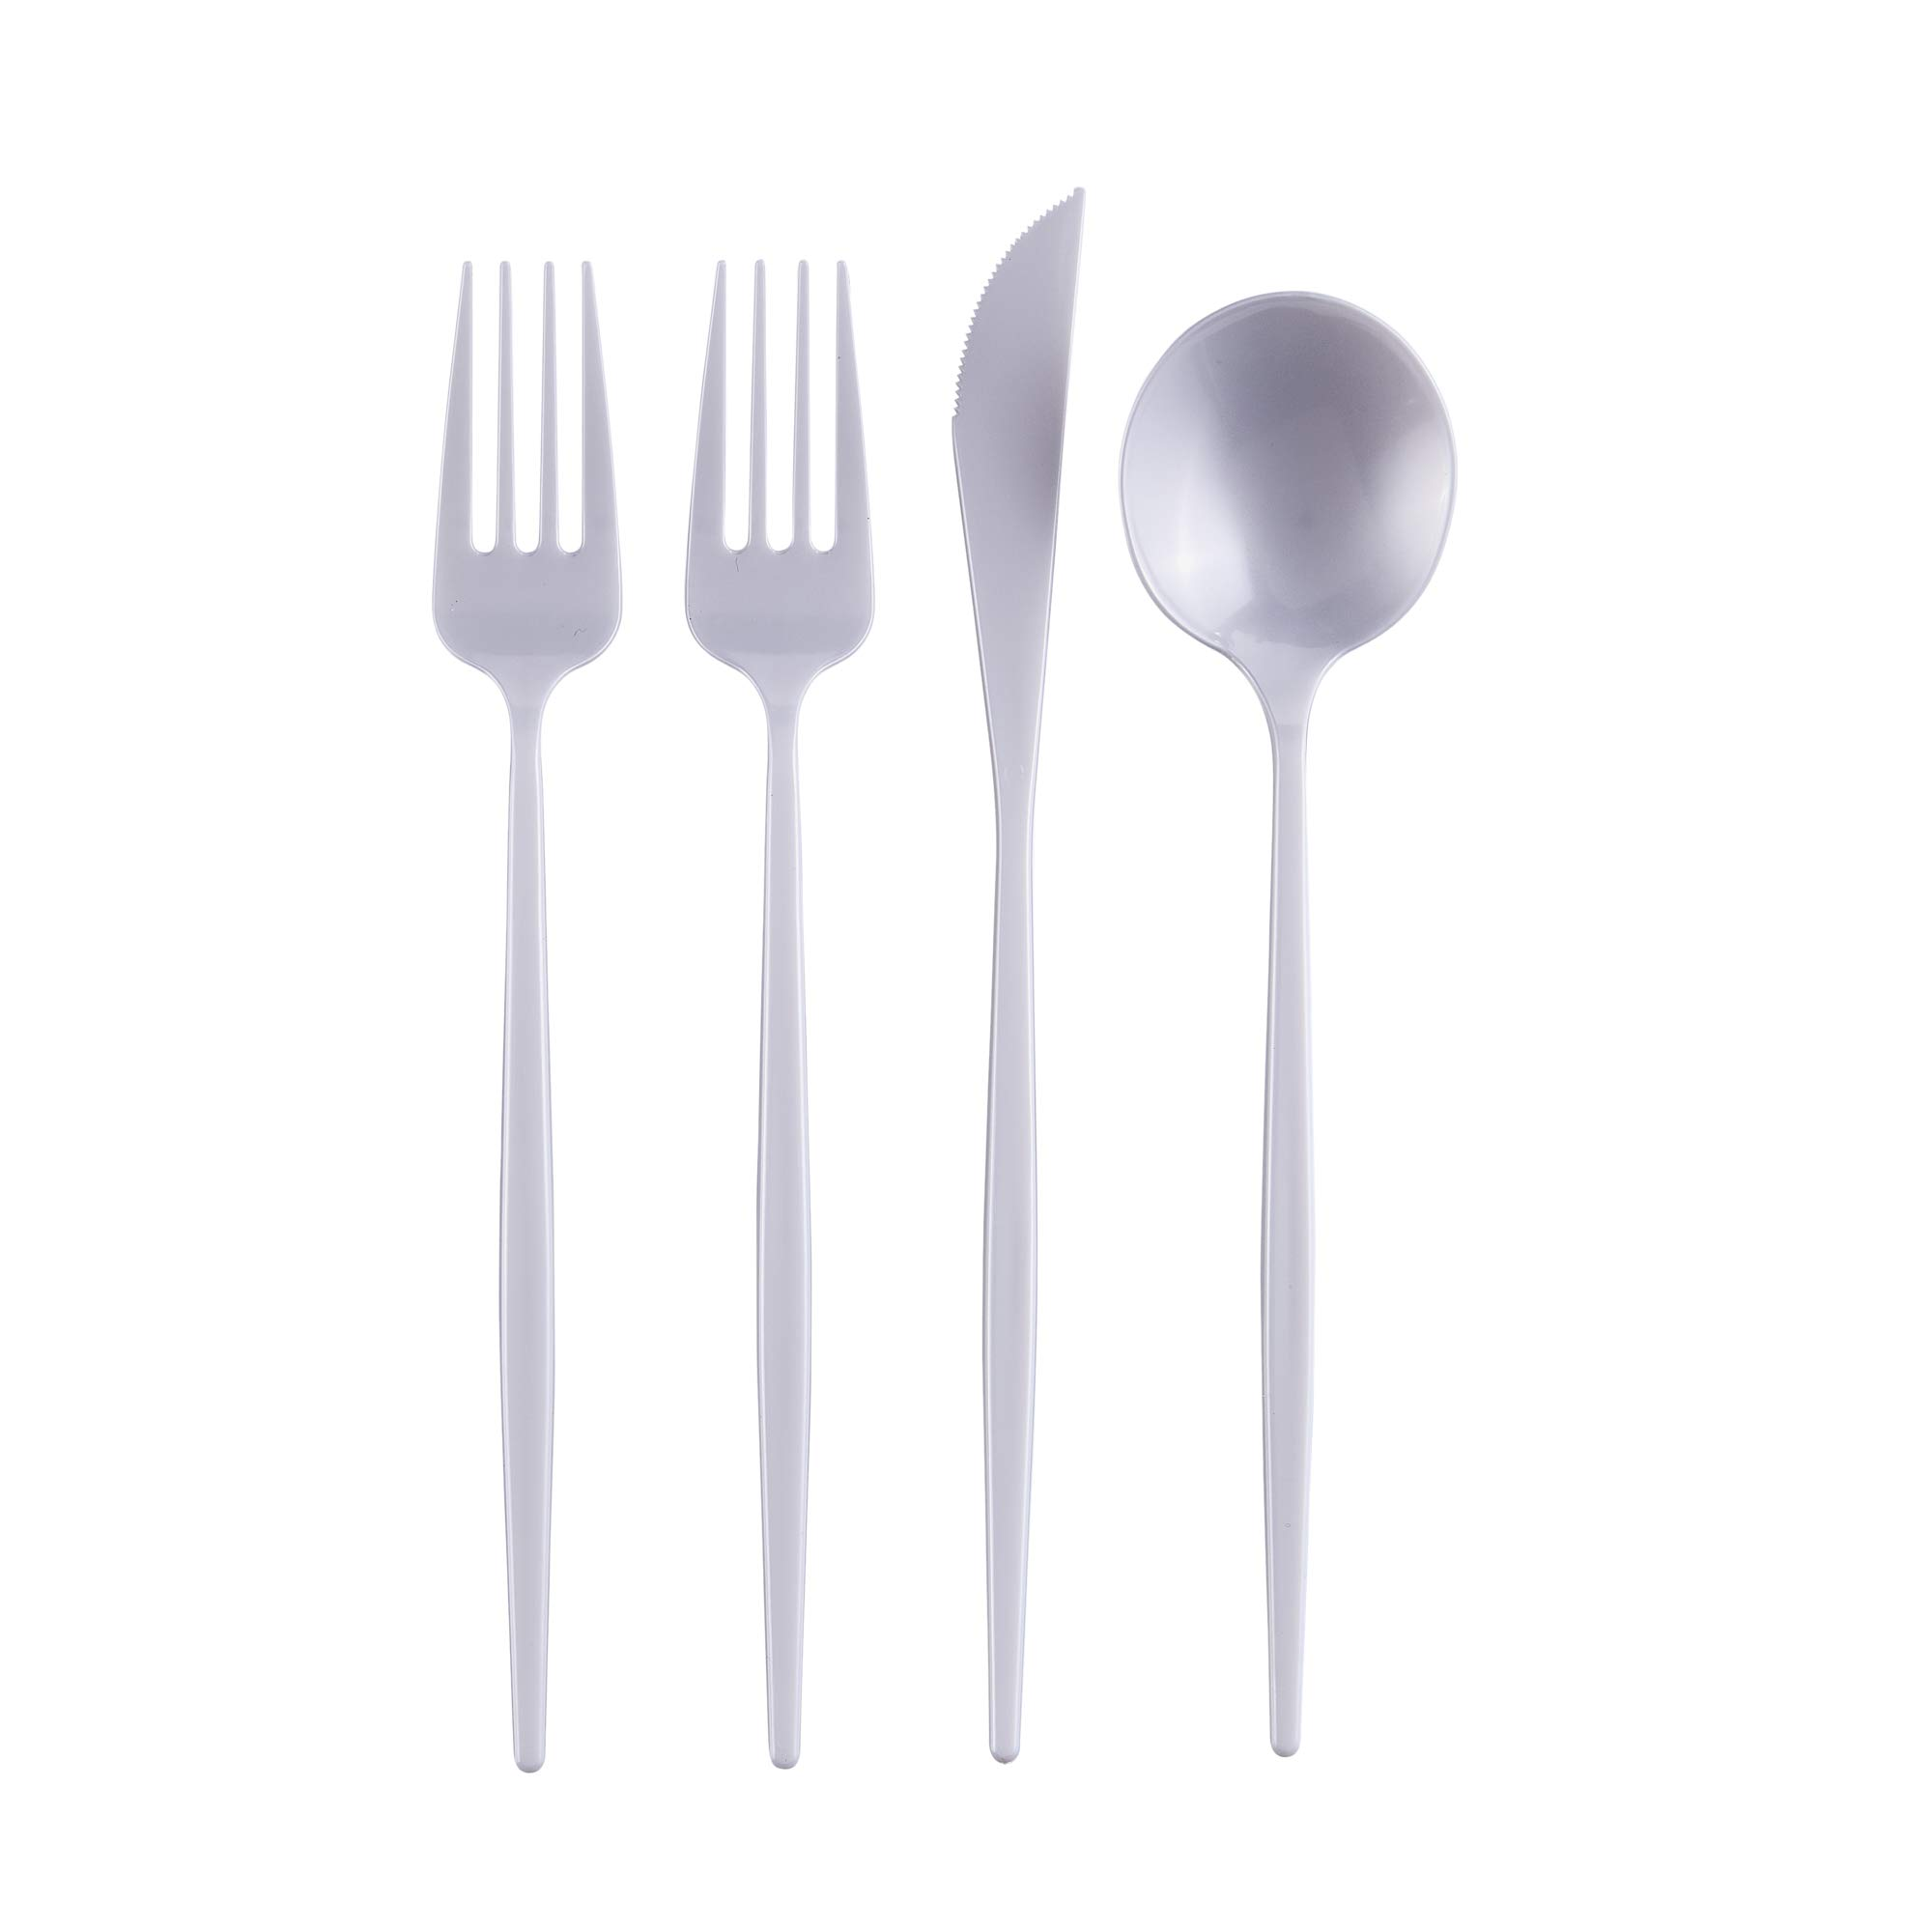 OPULENCE COLLECTION DISPOSABLE FLATWARE SET   Heavy Duty Plastic Cutlery   96 pc Set   48 Forks, 24 Knives and 24 Spoons   for Upscale Wedding and Dining (Pearl)